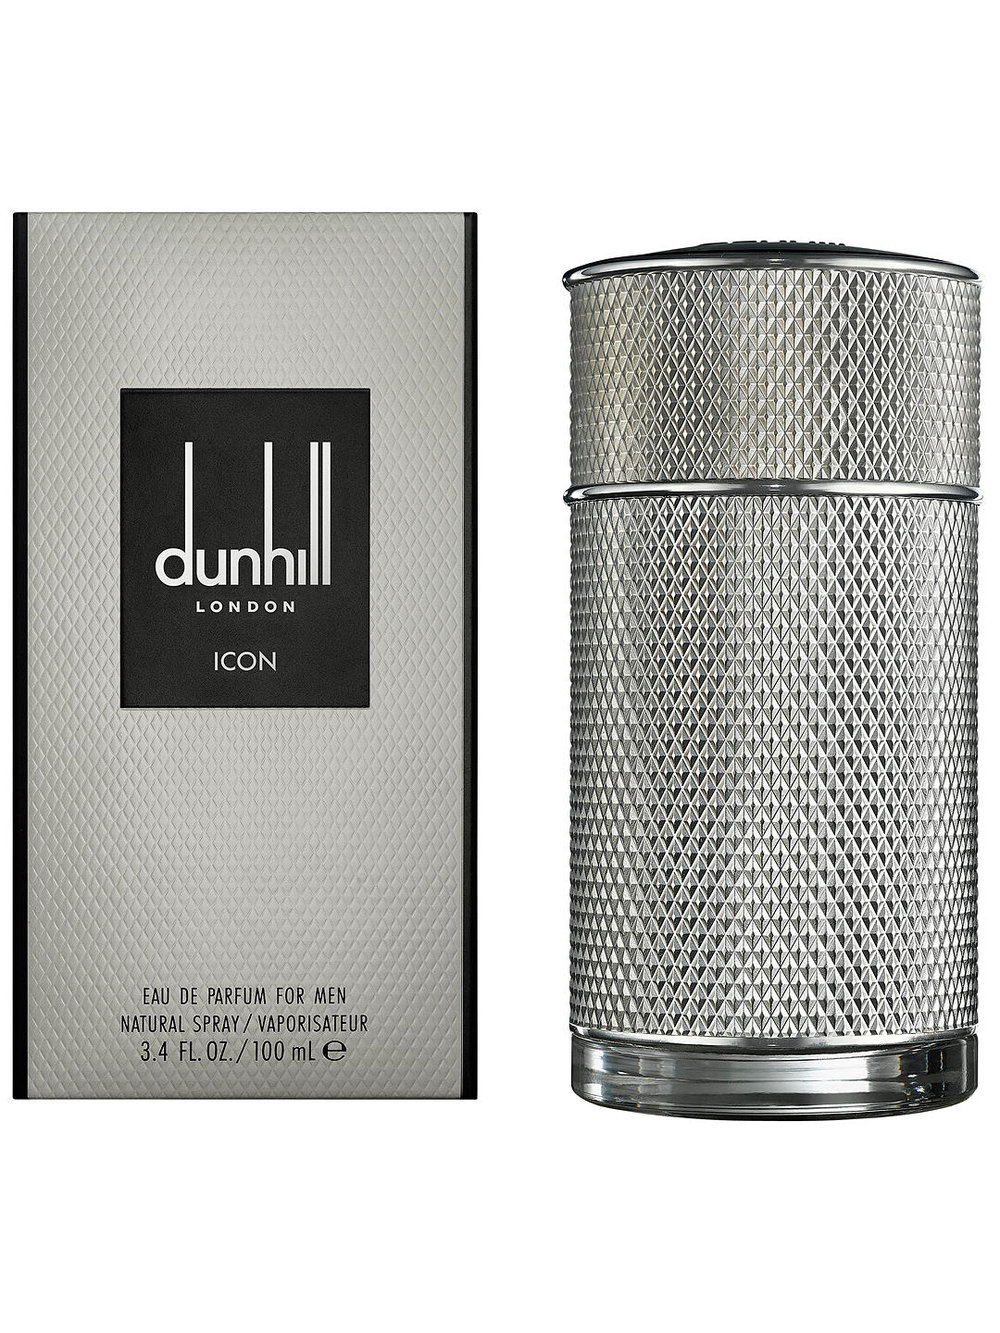 Dunhill London ICON, John Lewis, £83.50